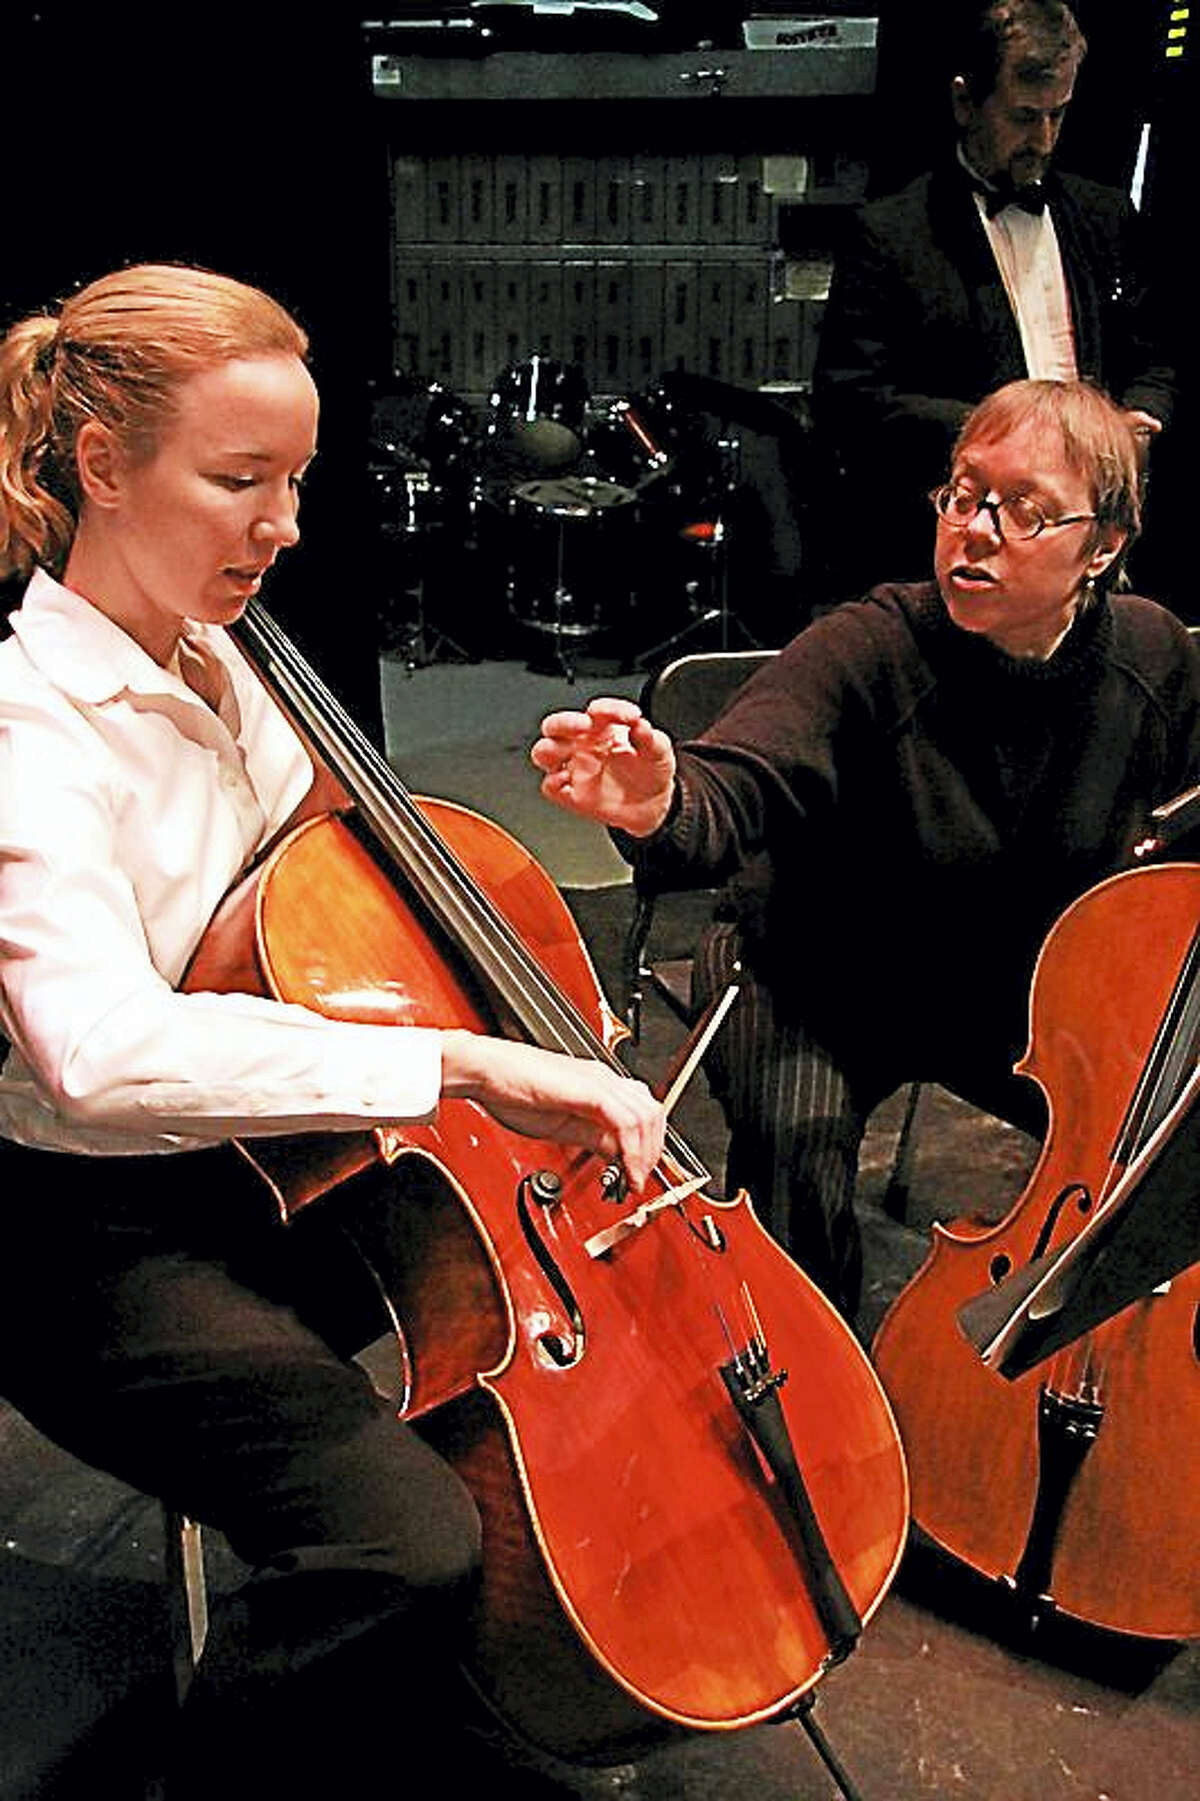 A member of the WSO instructs a student during rehearsal.